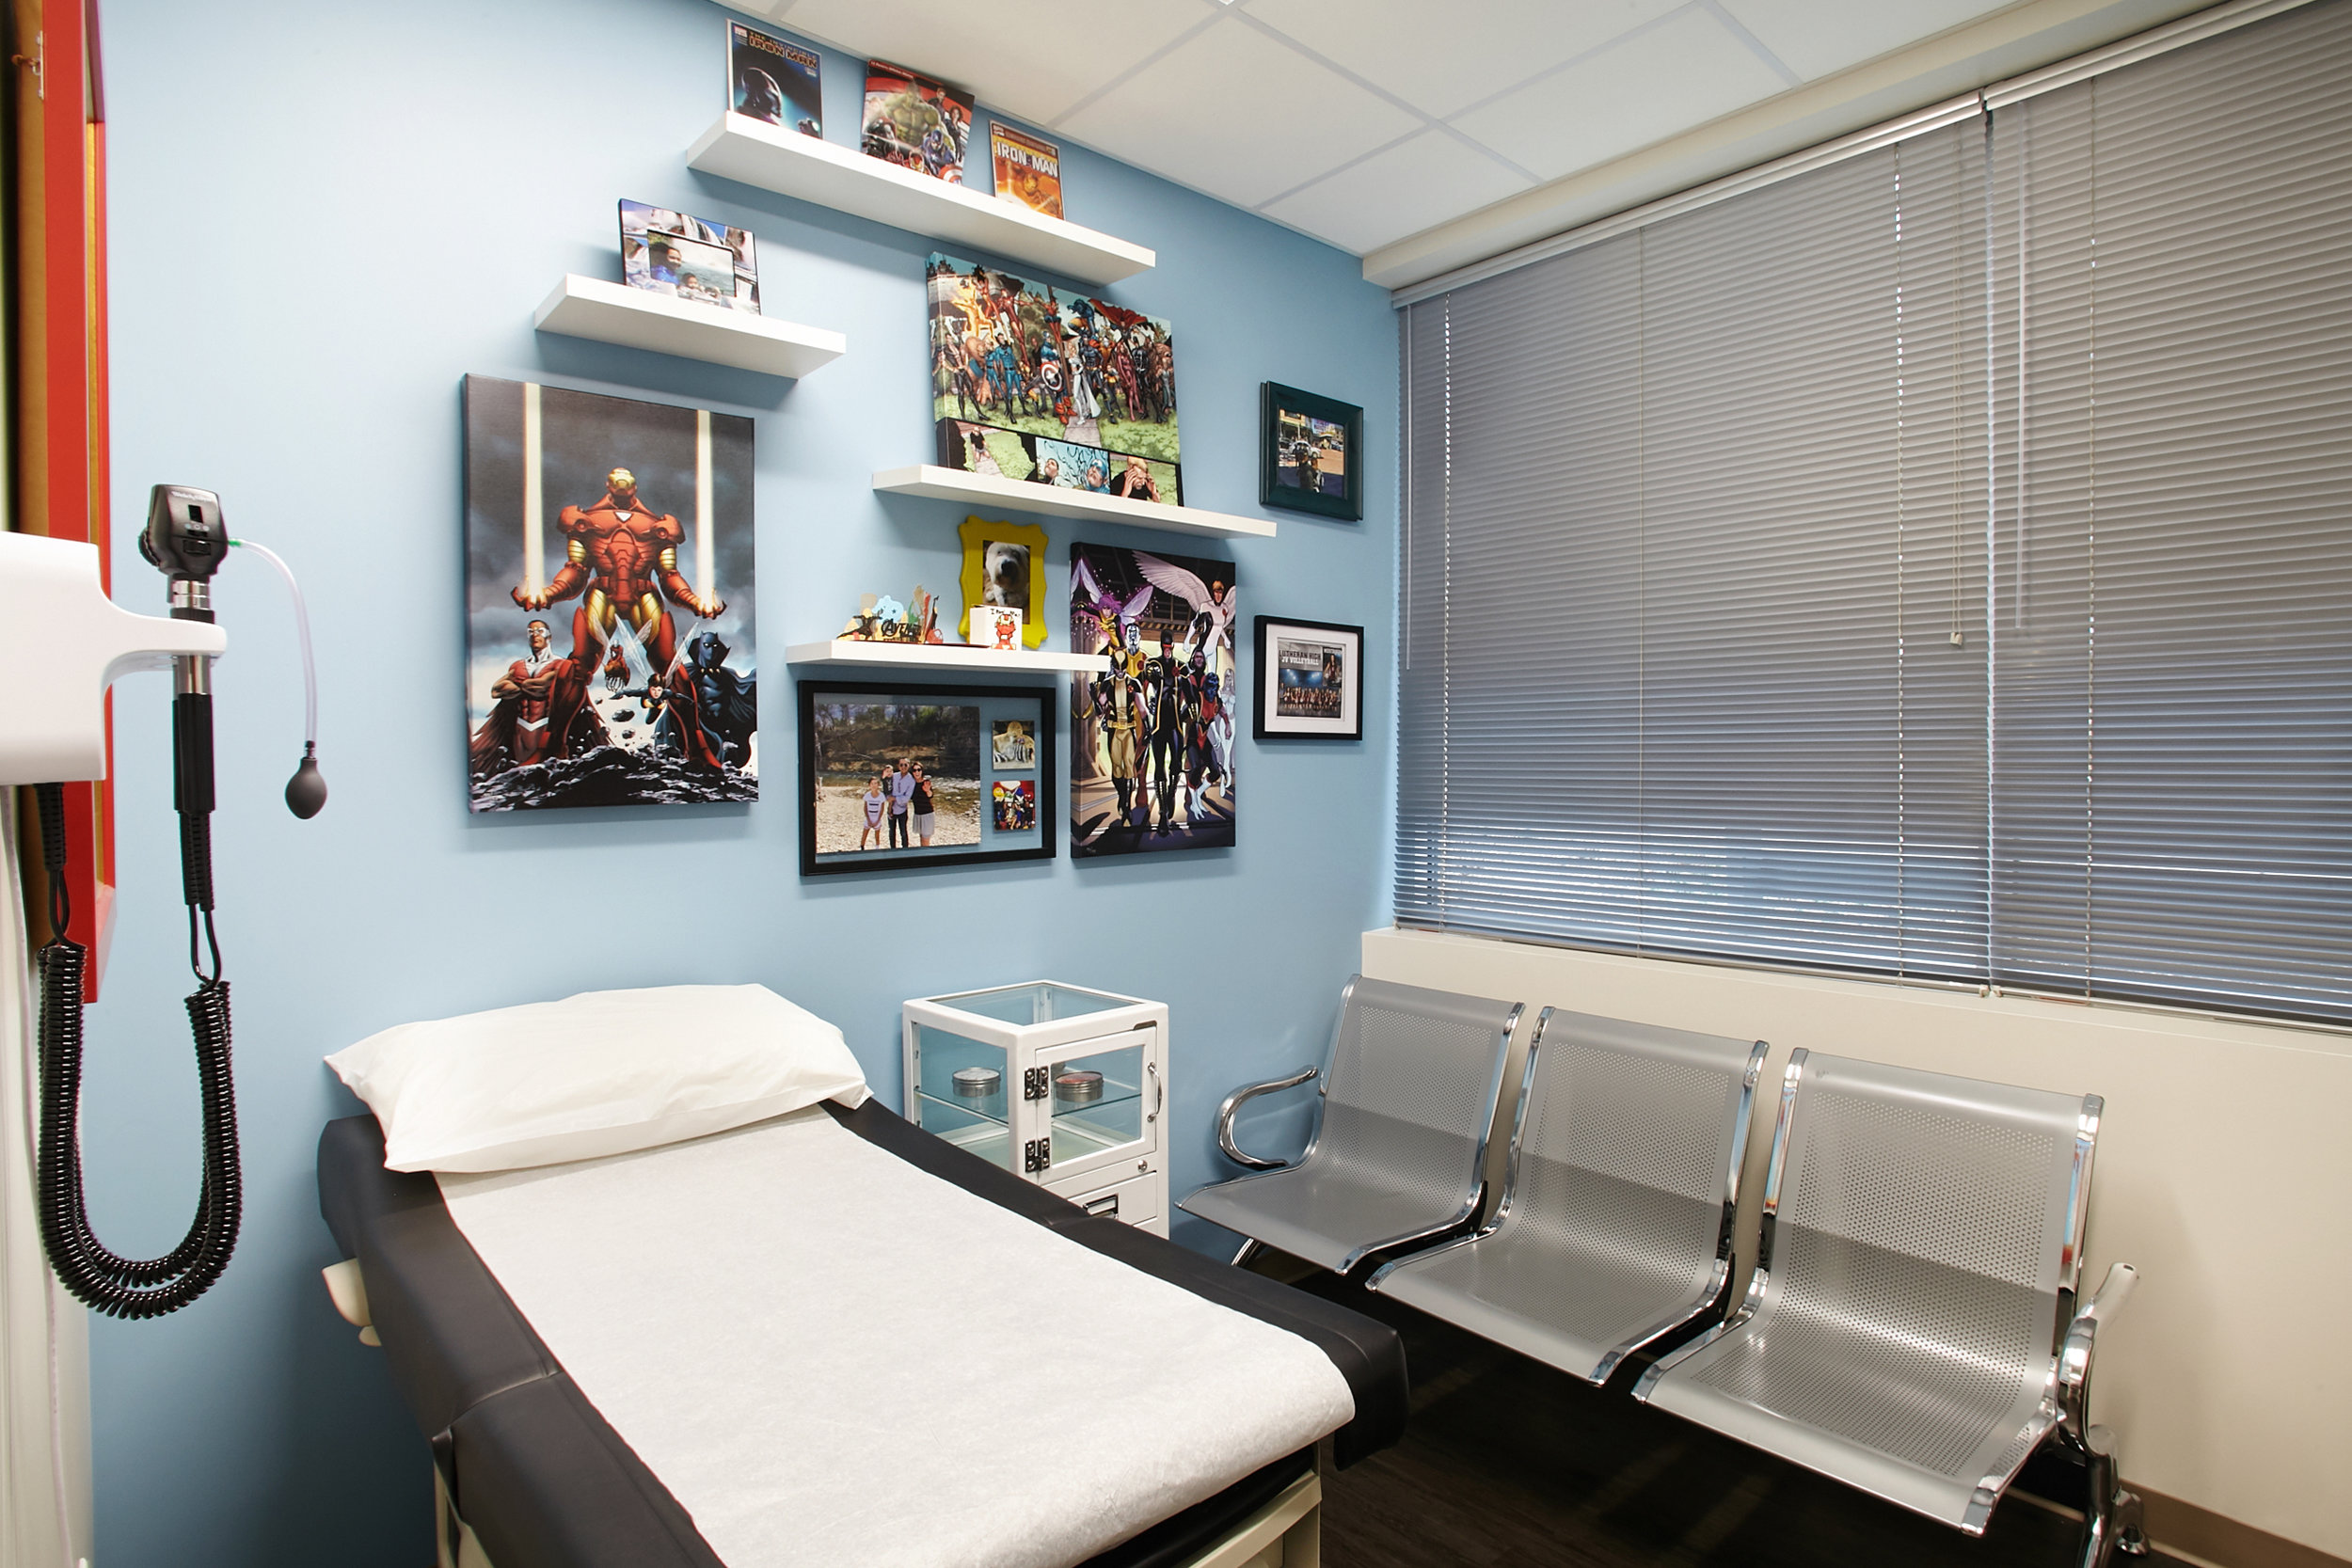 Hill Country Family Medicine_MG_1087.jpg